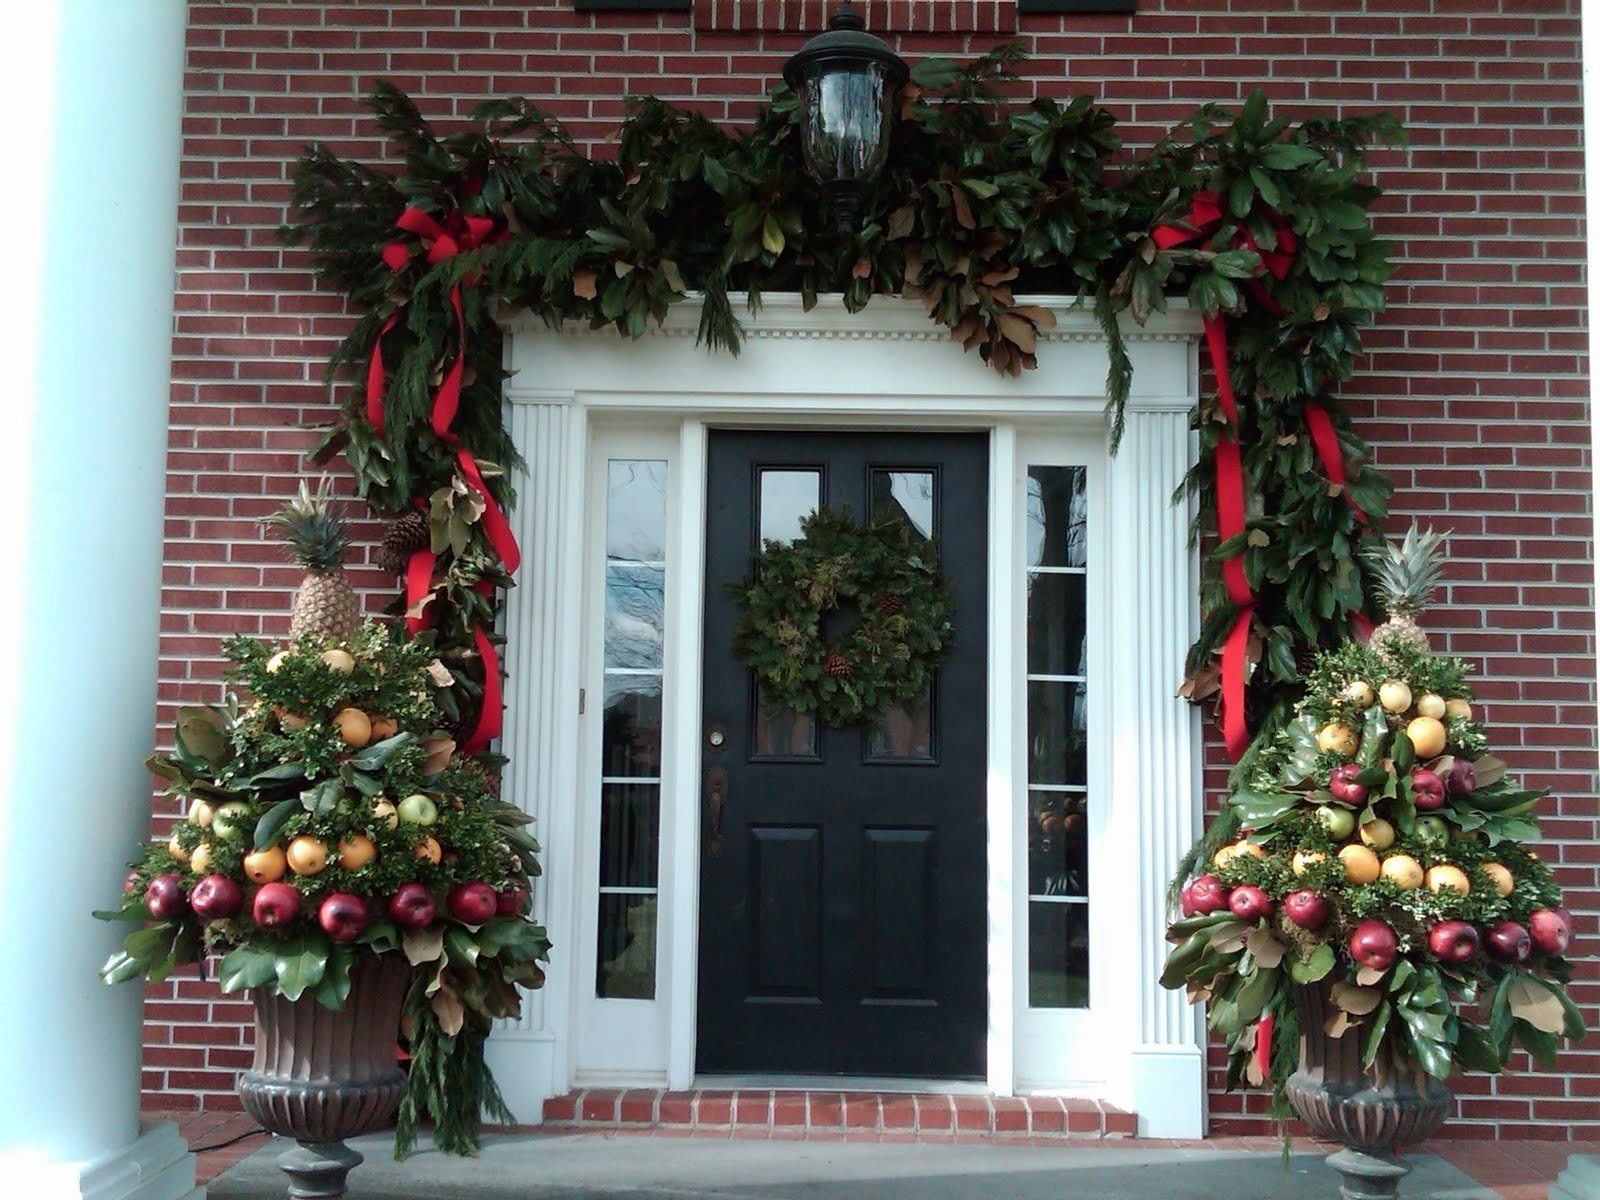 10 Awesome Front Door Christmas Decorating Ideas christmas decorating your front door decorations ideas decor festive 2 2020